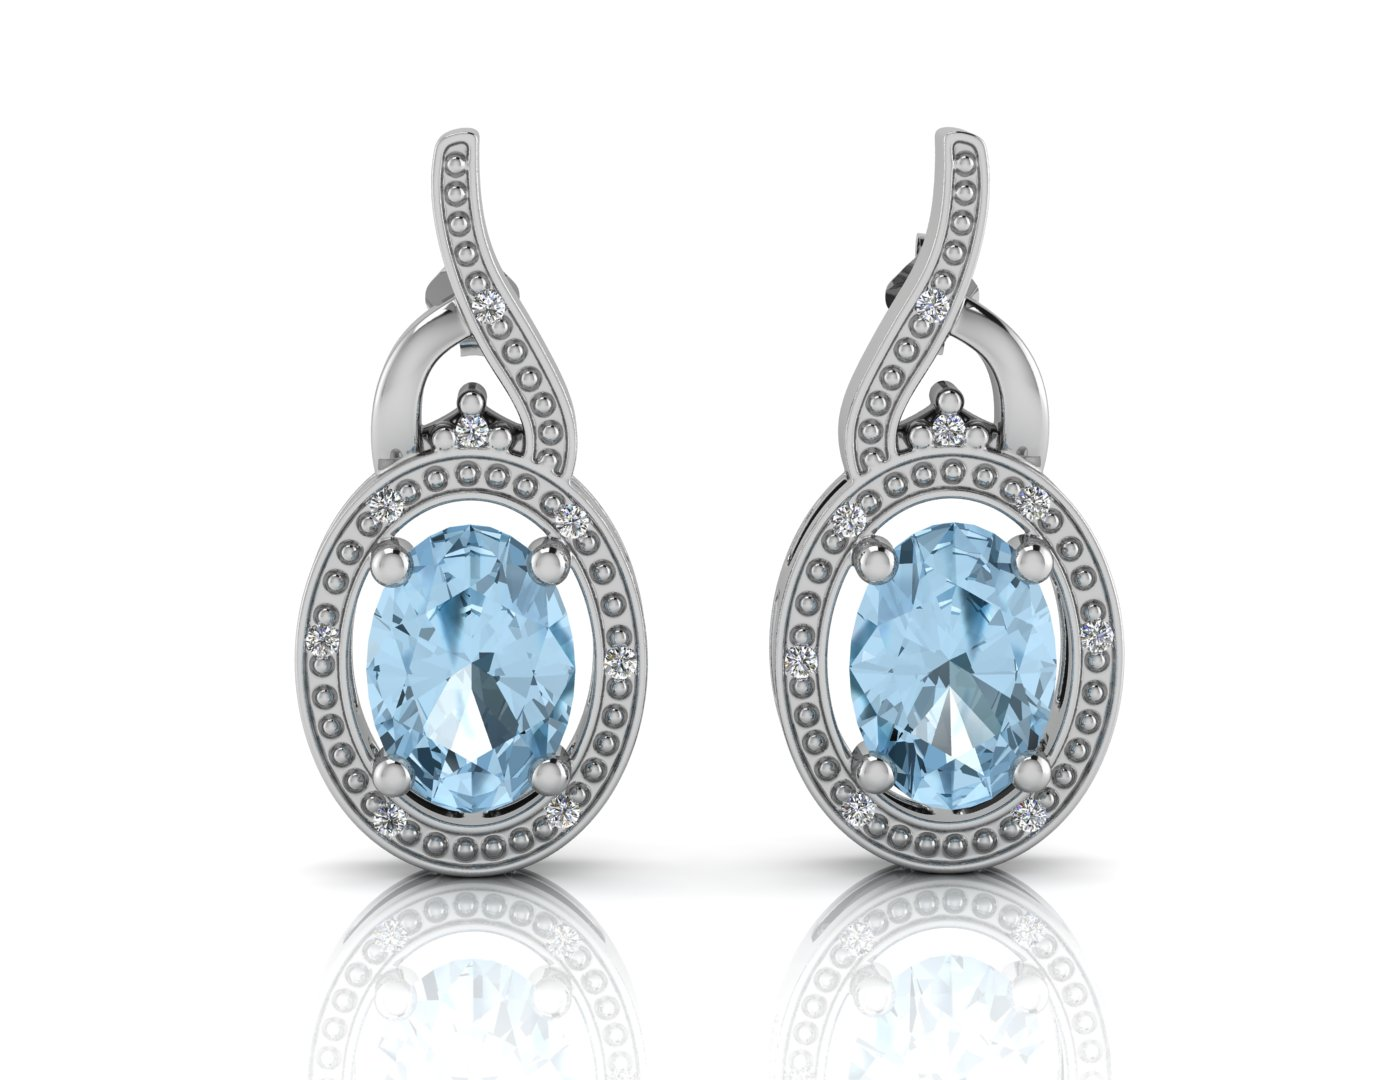 9ct White Gold Diamond And Blue Topaz Earring - Image 3 of 4